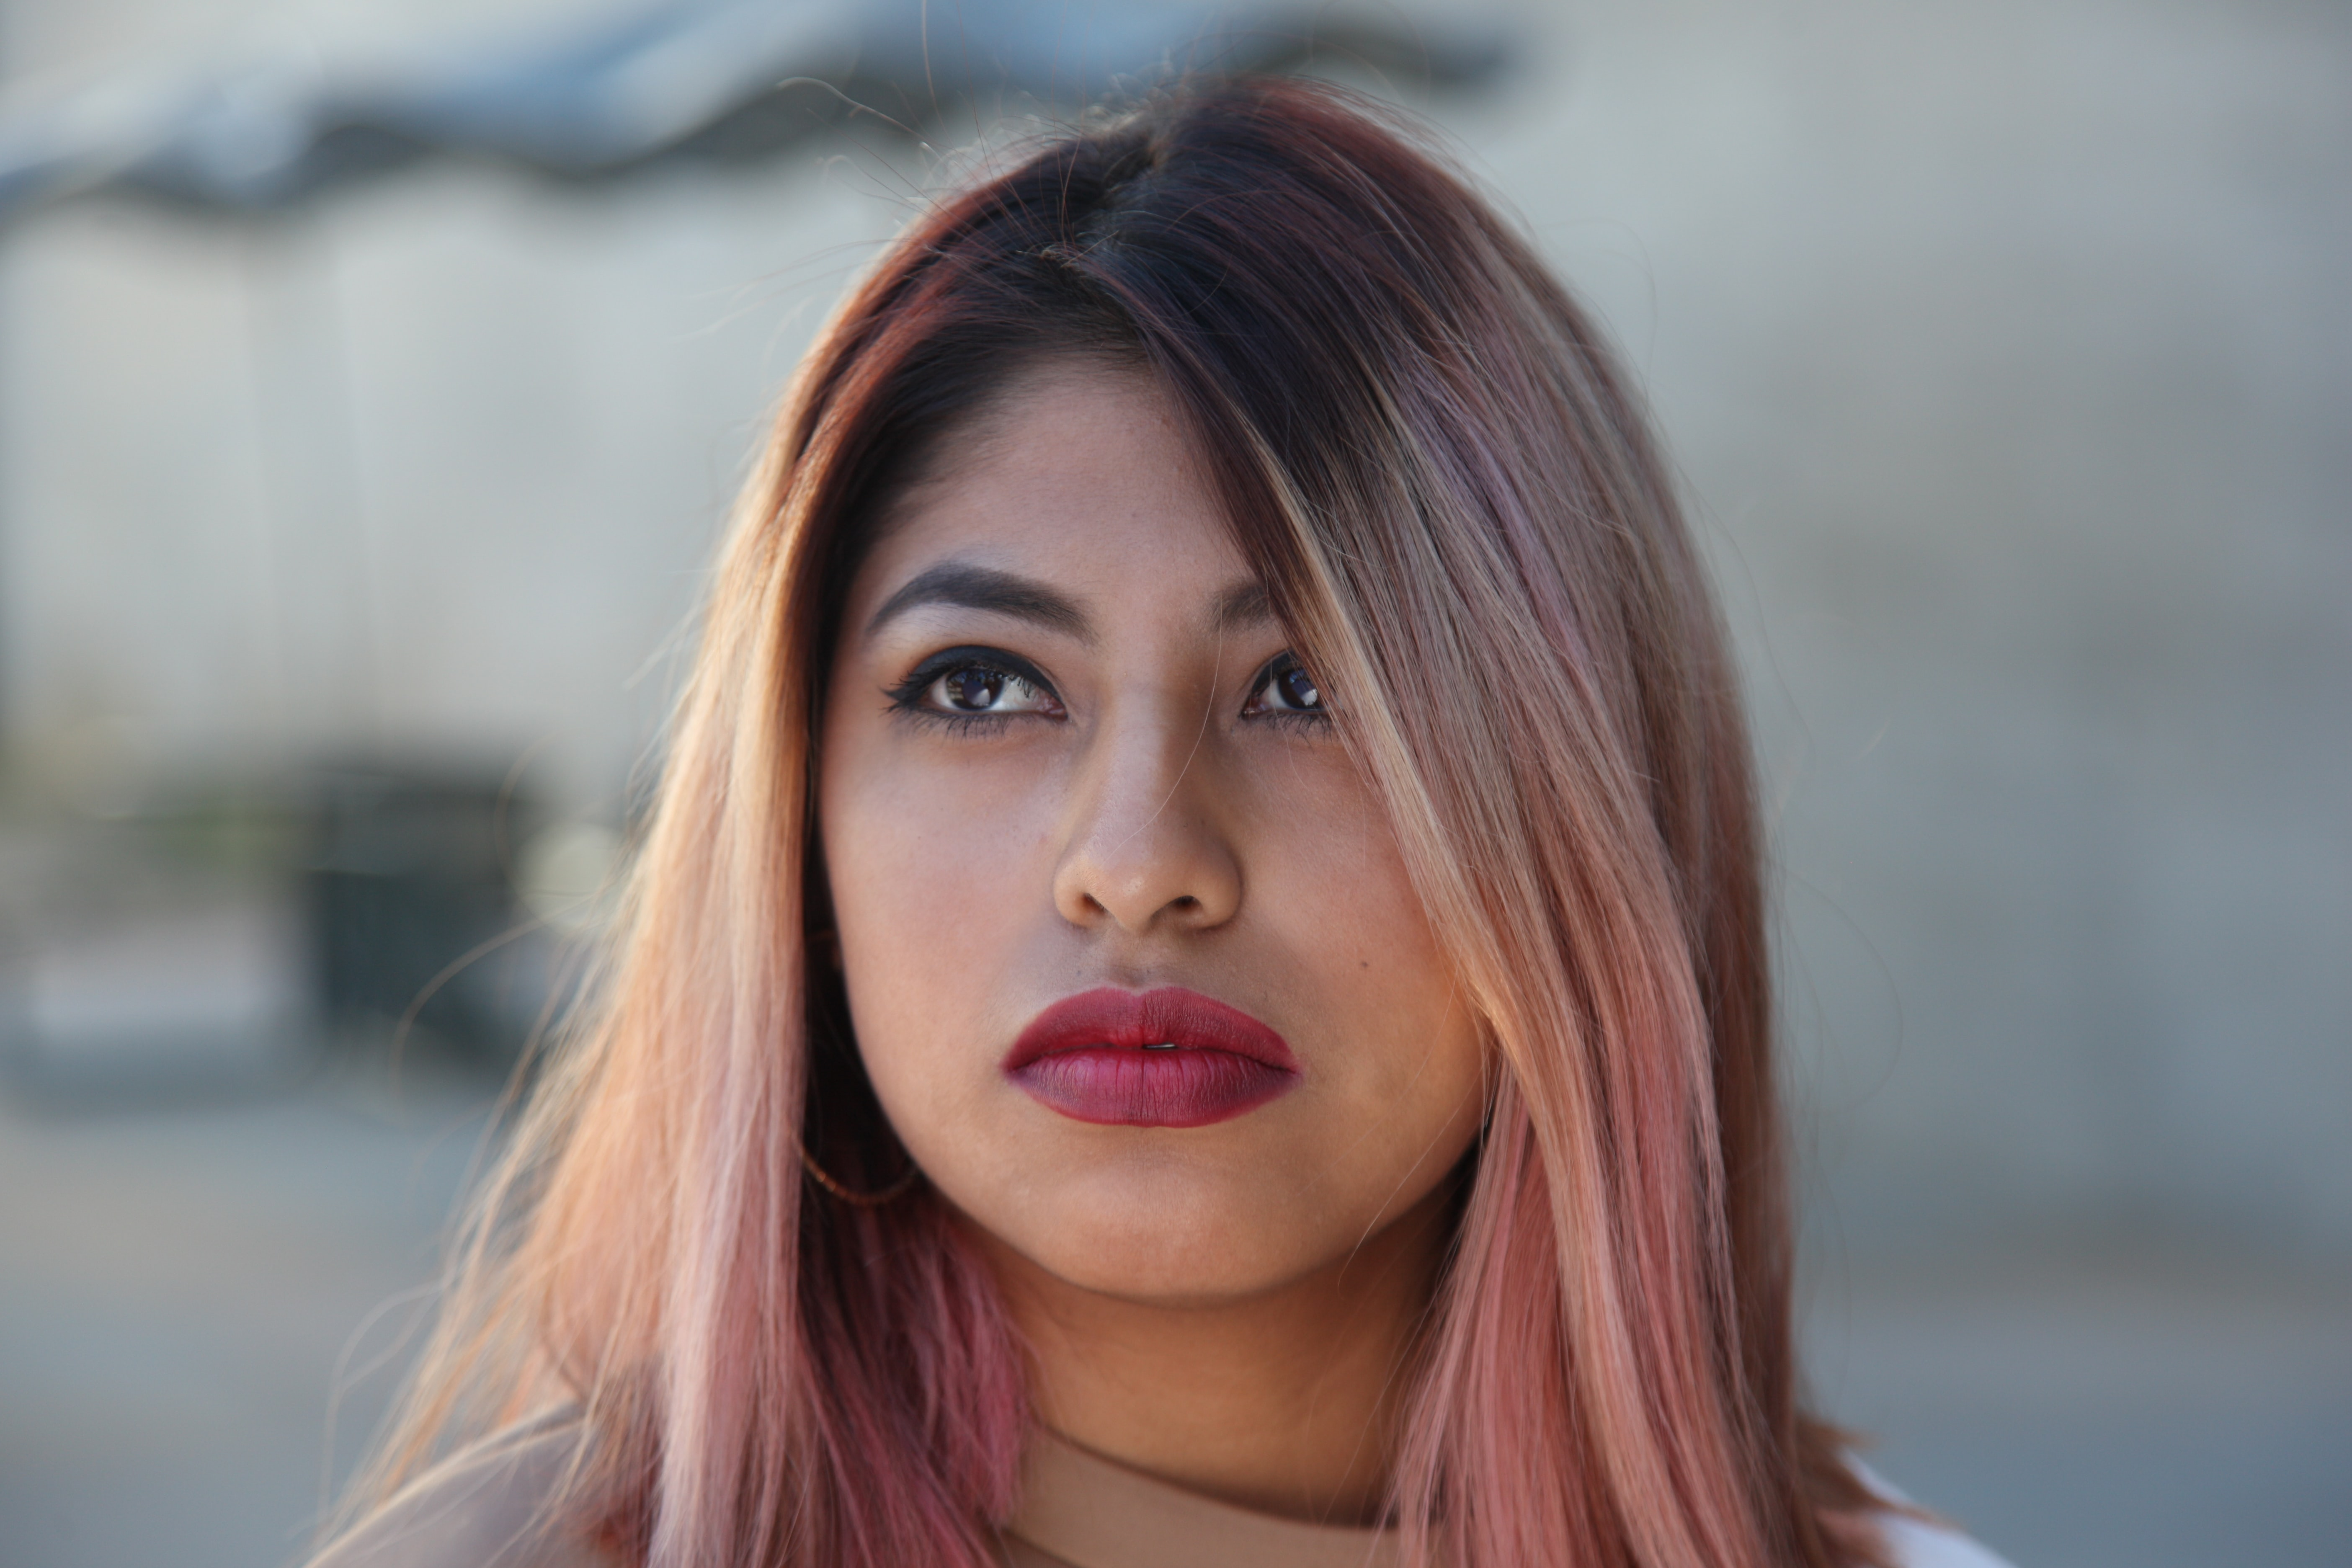 Woman with bold pink lips and pink hair looking away